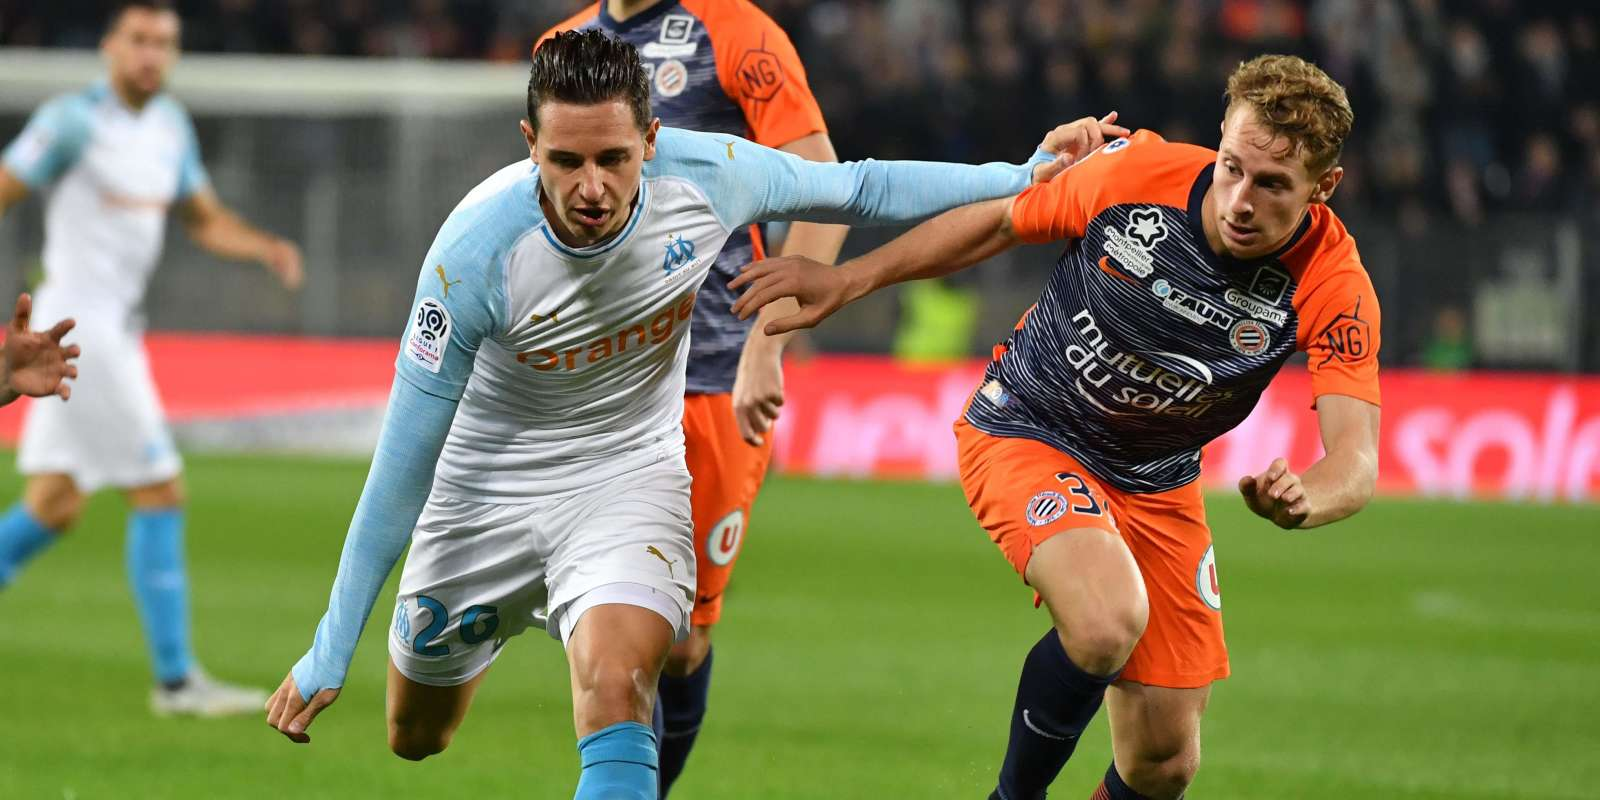 Olympique de Marseille's French midfielder Florian Thauvin (L) vies with Montpellier's French defender Nicolas Cozza (R) during the French L1 football match between Montpellier and Marseille, on November 4, 2018 at the the Mosson stadium in Montpellier, southern France. / AFP / PASCAL GUYOT